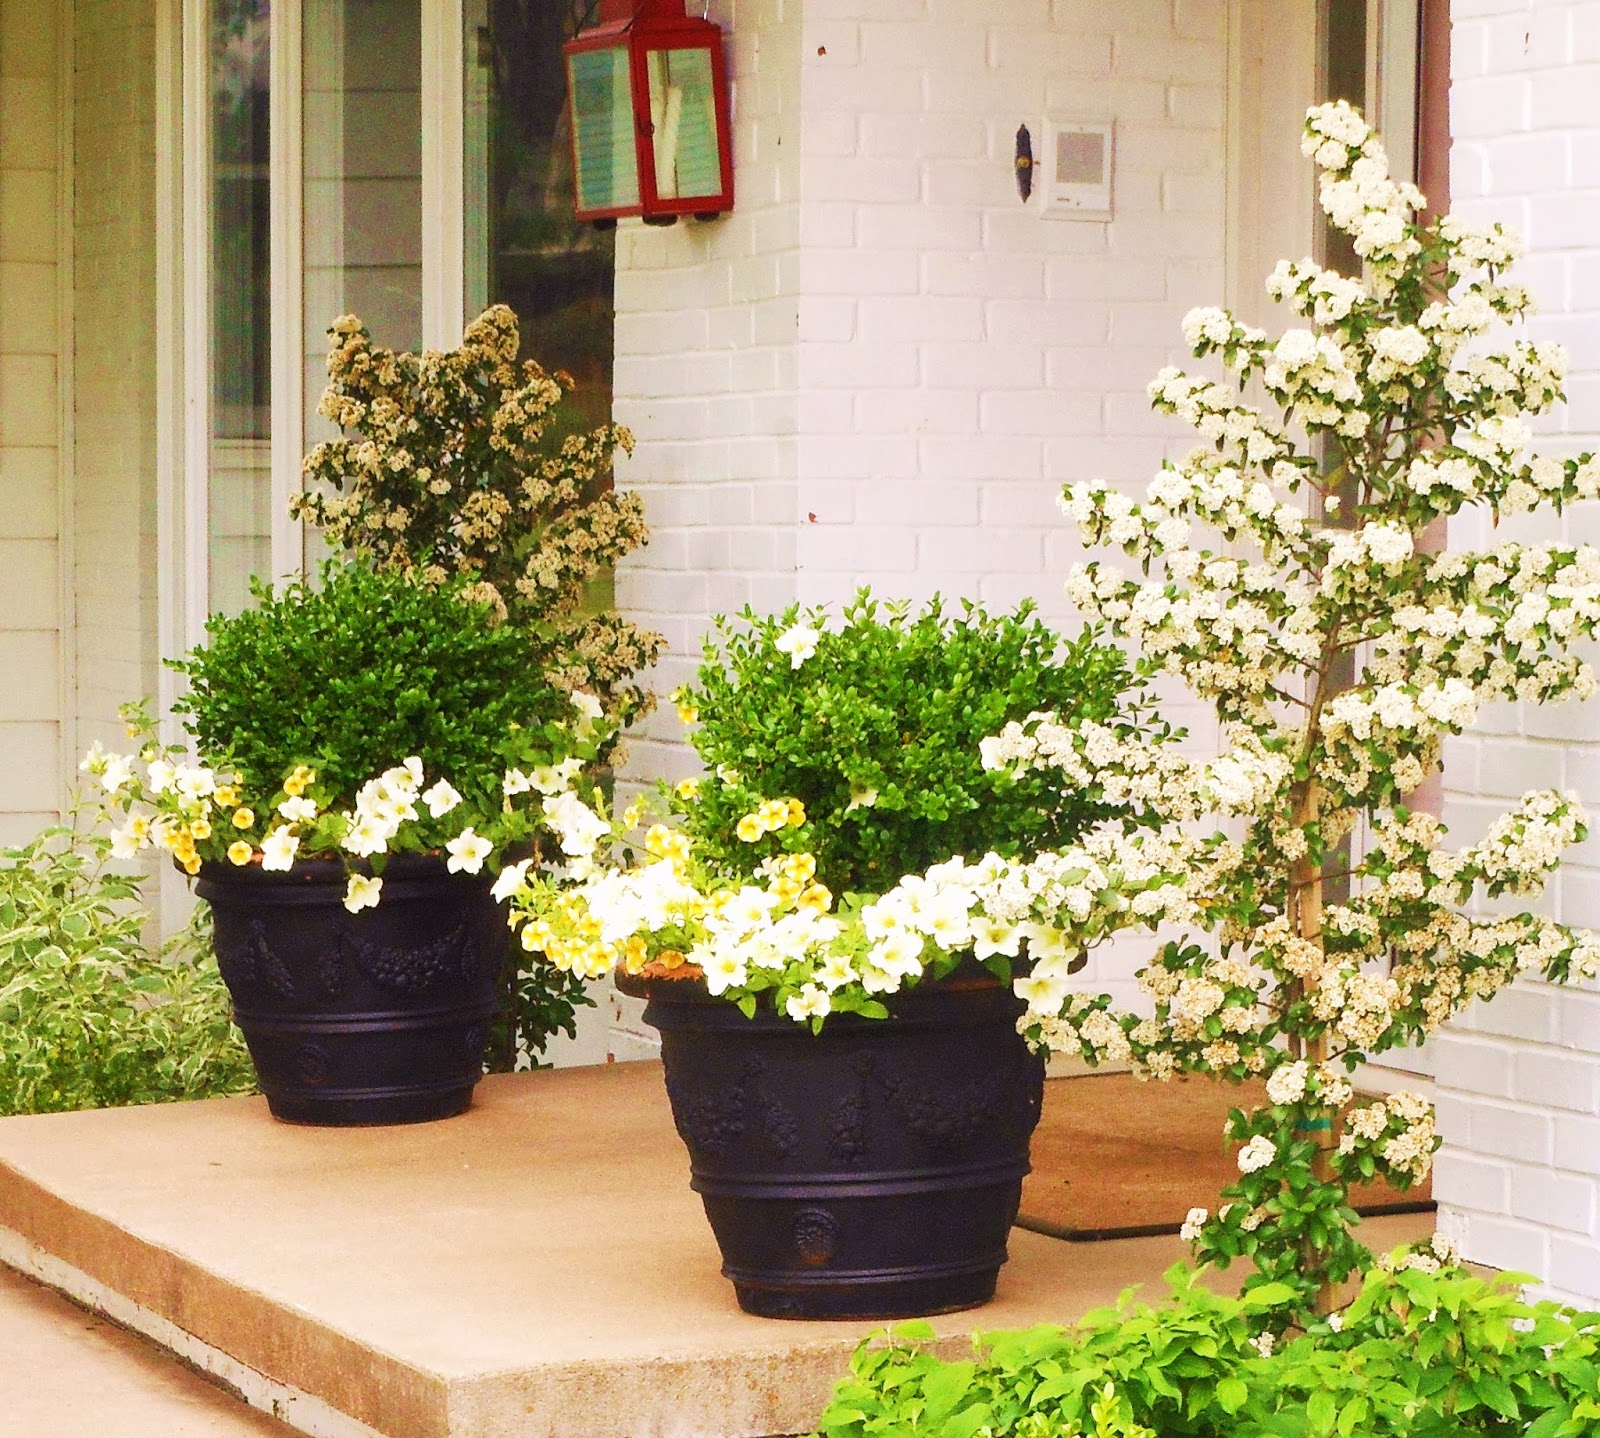 Knockout Roses Pots Front Door